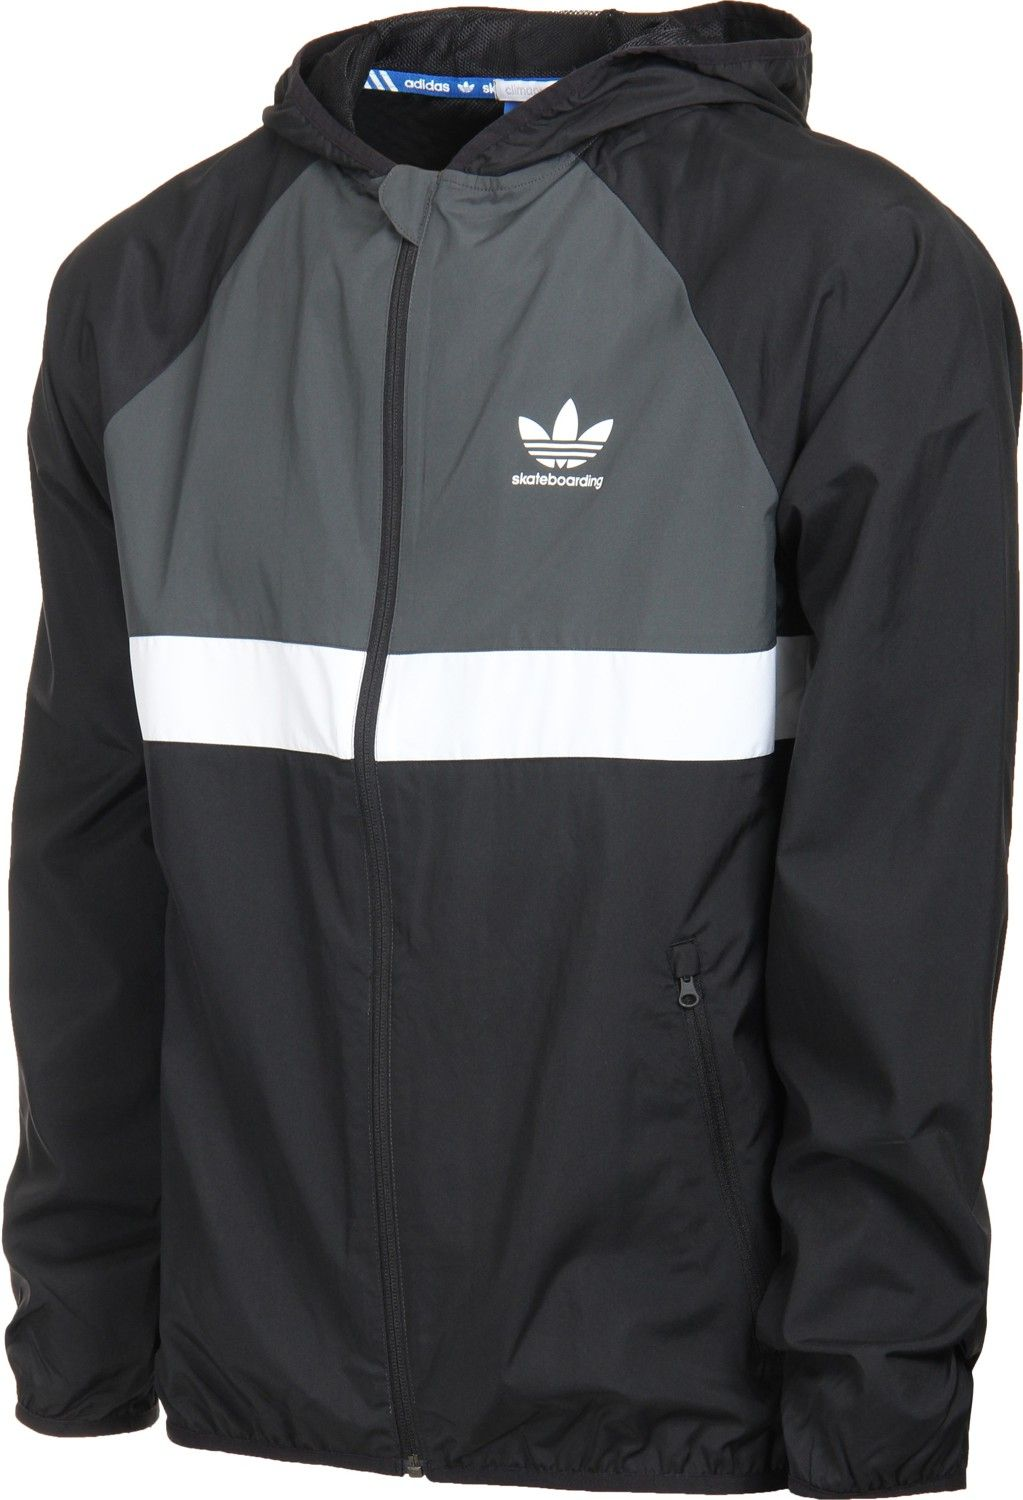 Adidas ADV Packable Windbreaker - black - view large   Wanted ... e229652ffdd4